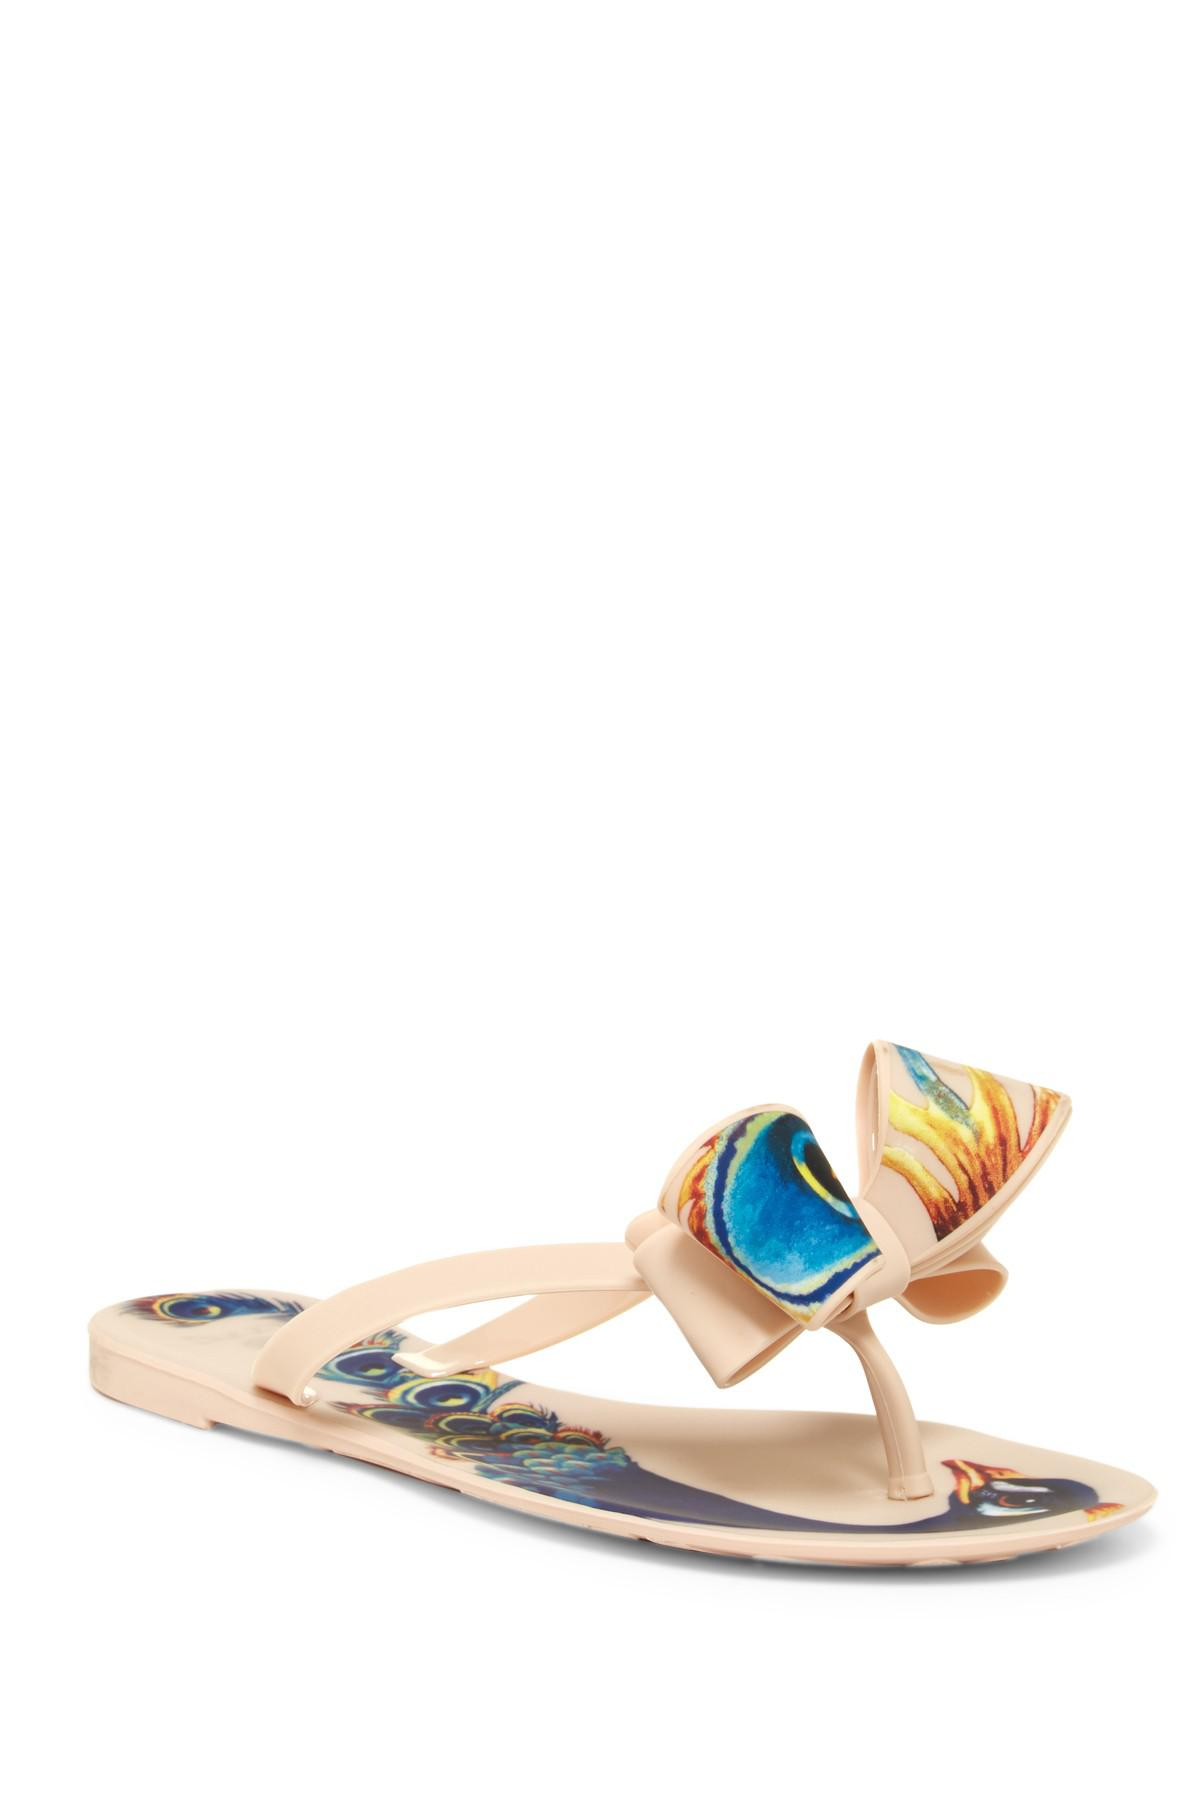 b263a82fb85bc2 Lyst - Dizzy Matte Peacock Bow Flip-flop in Natural